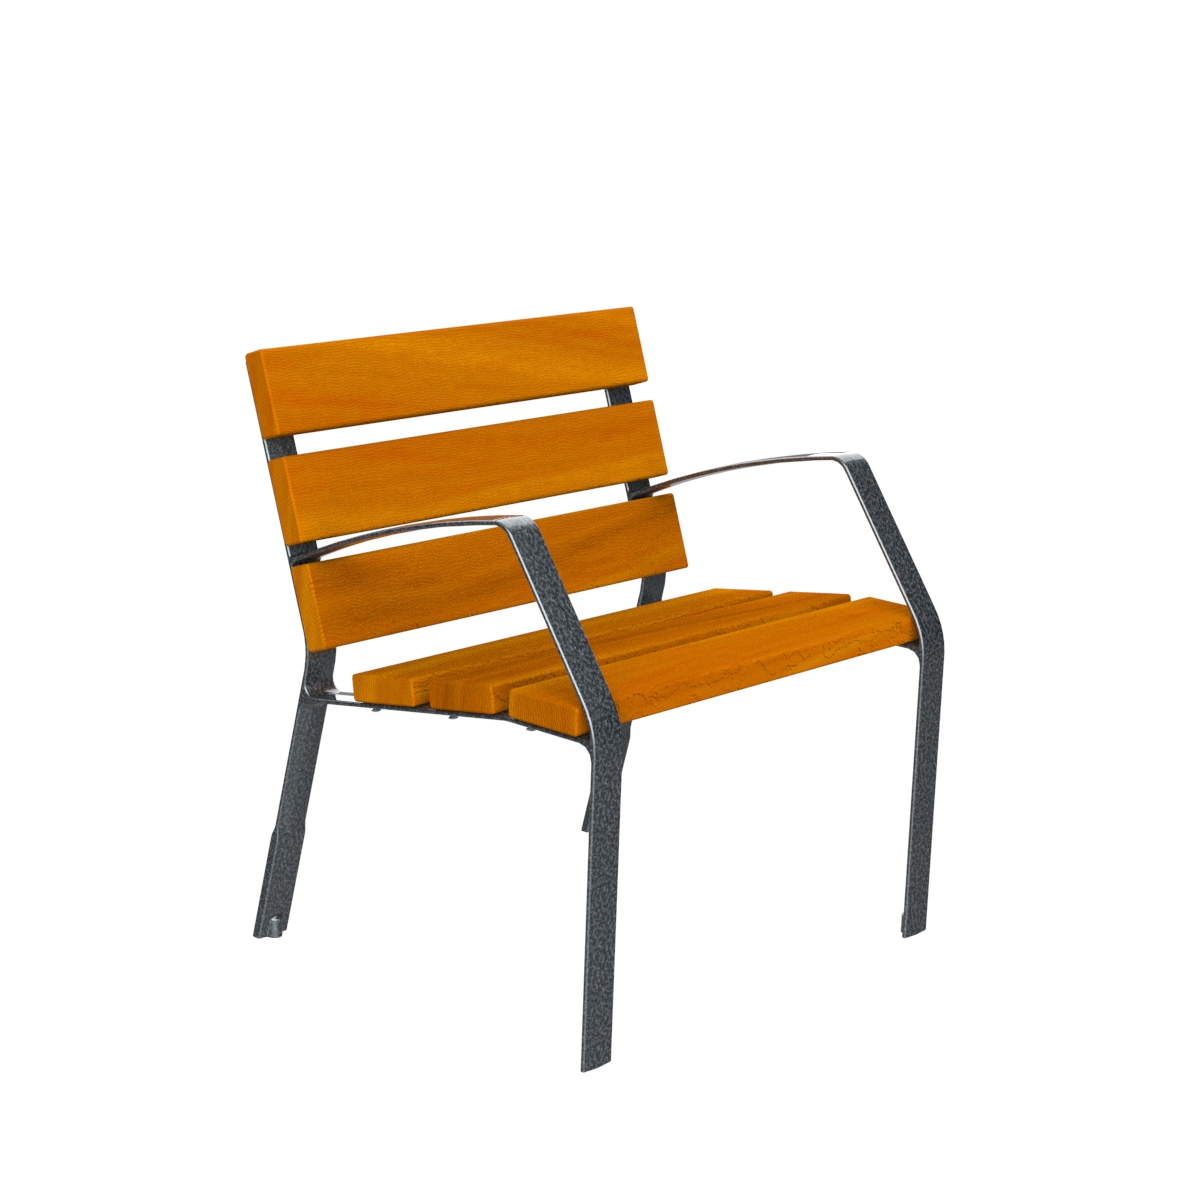 Chair Modo08 tropical wood and cast iron leg